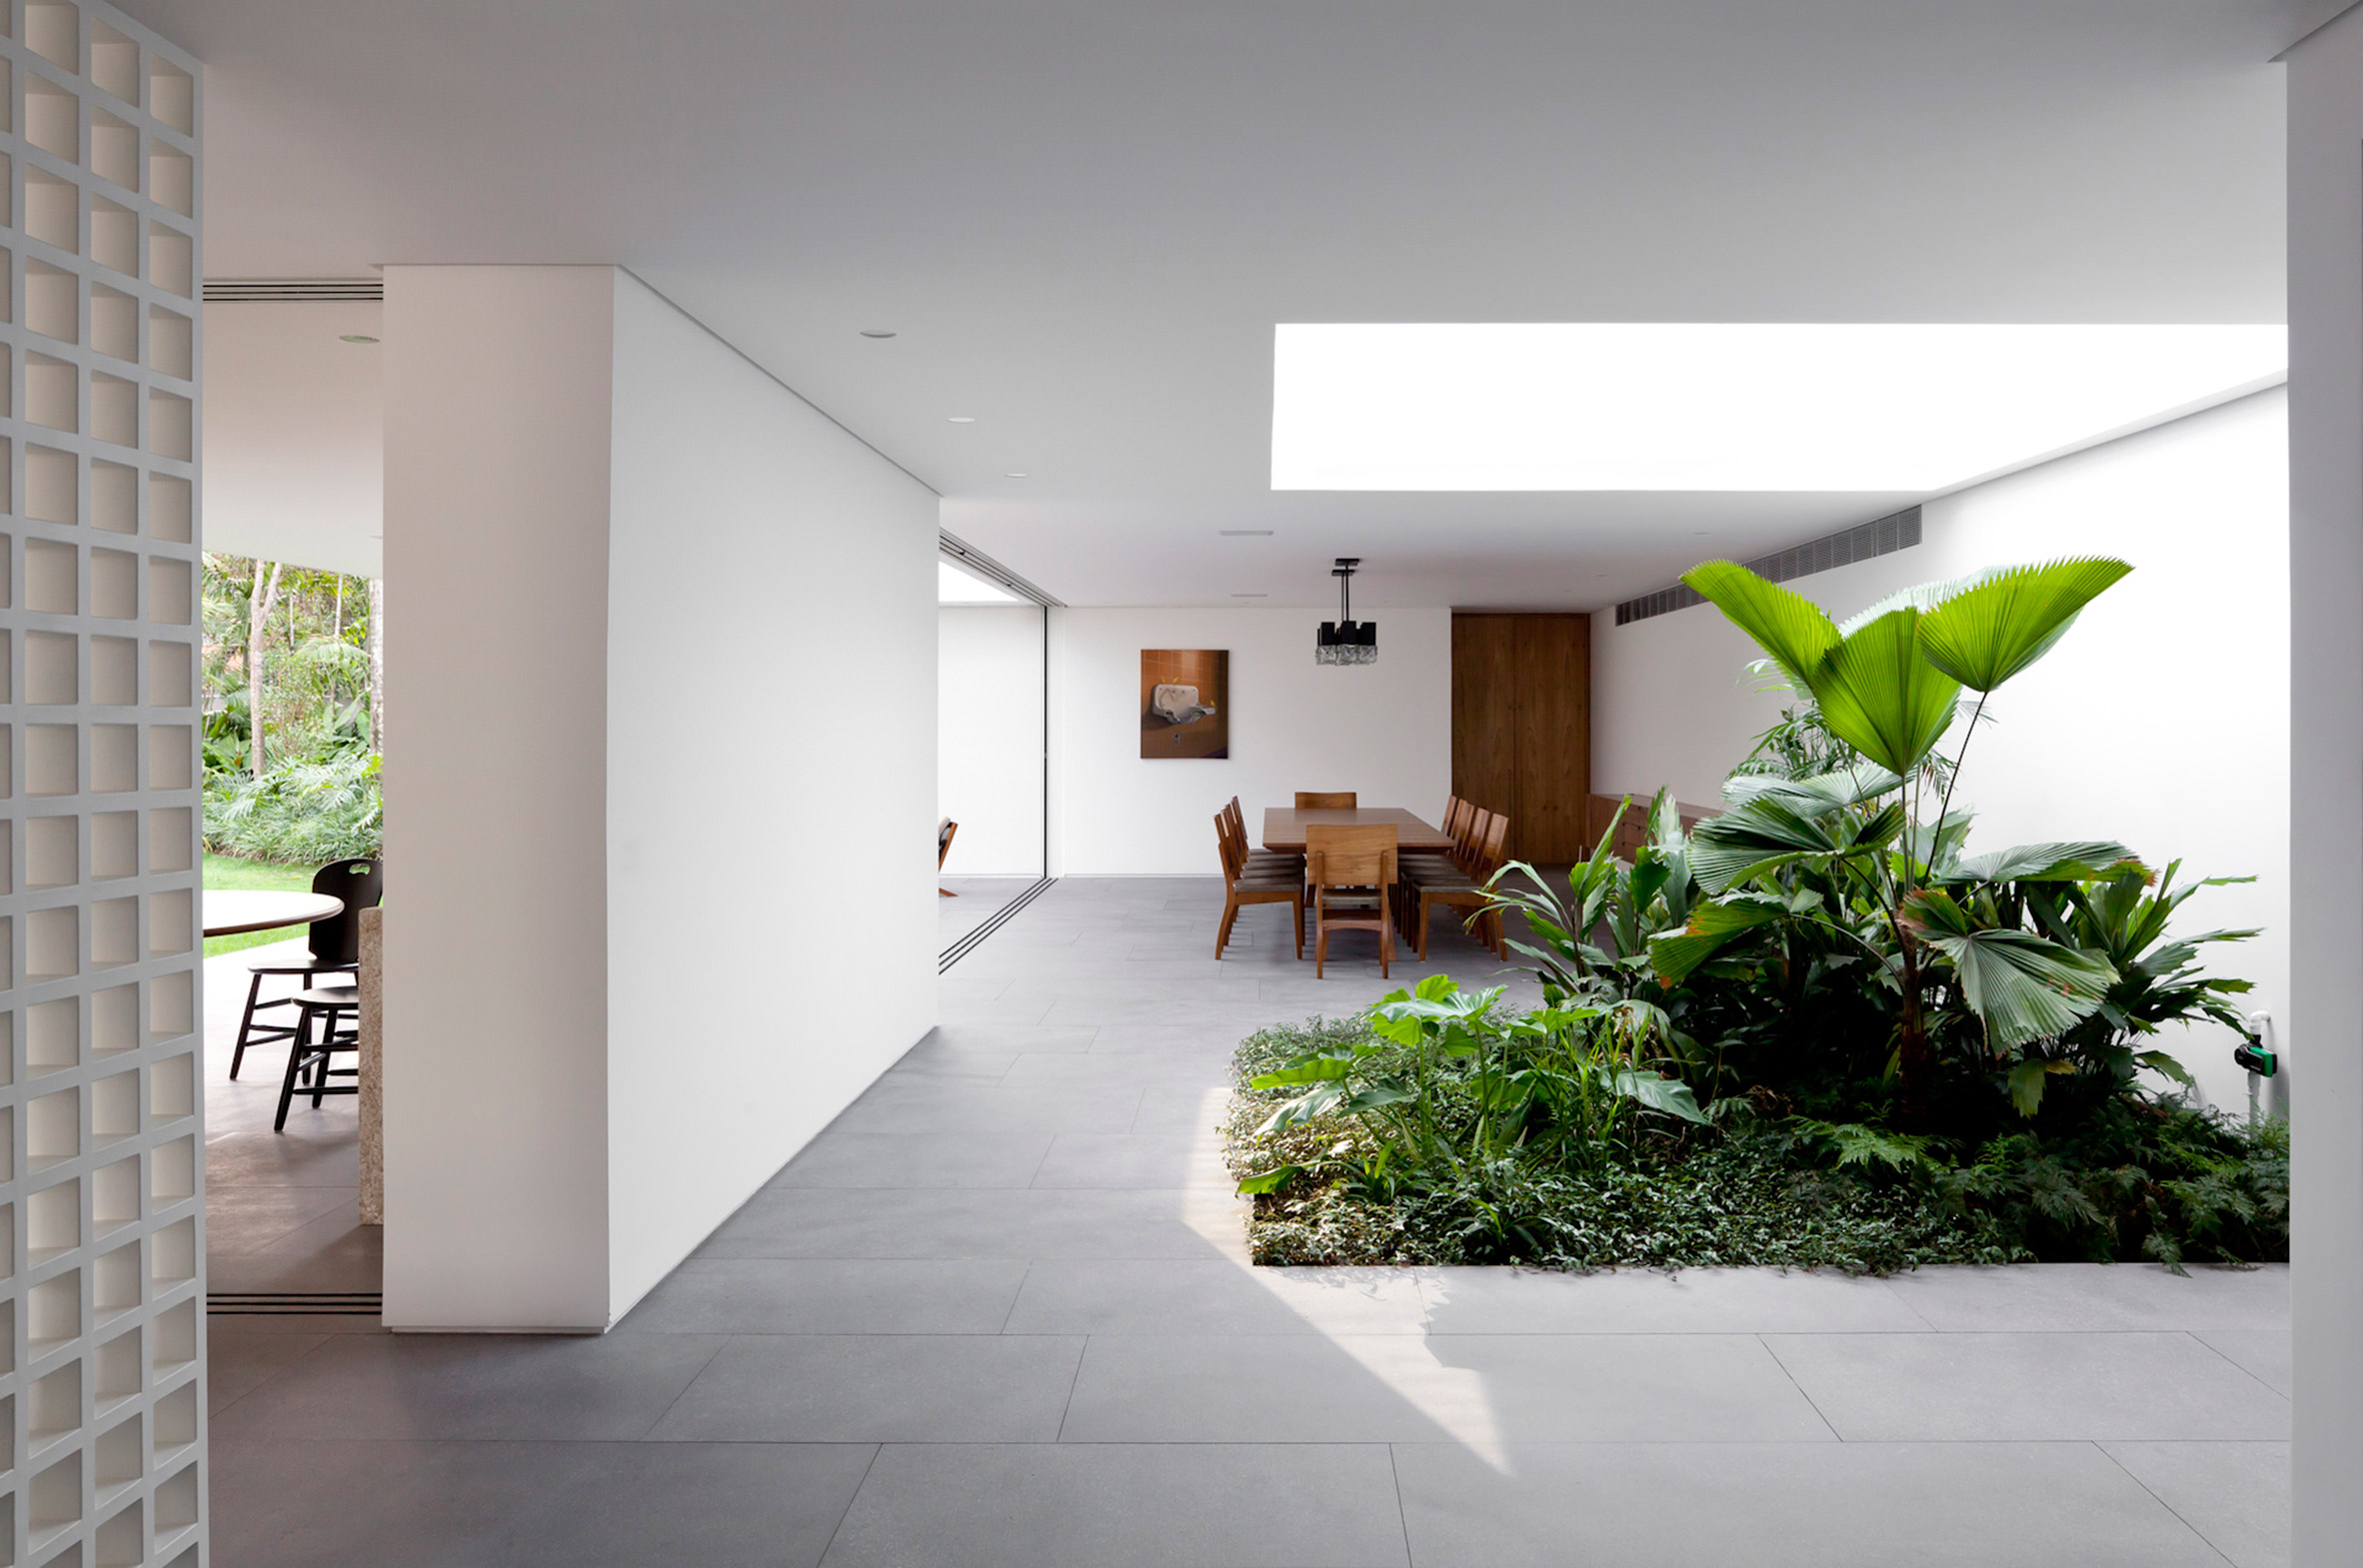 Plant-filled Greenery House in Brazil Shines with Modern Floor Lamp FEAT modern floor lamps Plant-filled Greenery House in Brazil Shines with Modern Floor Lamps Plant filled Greenery House in Brazil Shines with Modern Floor Lamps 8